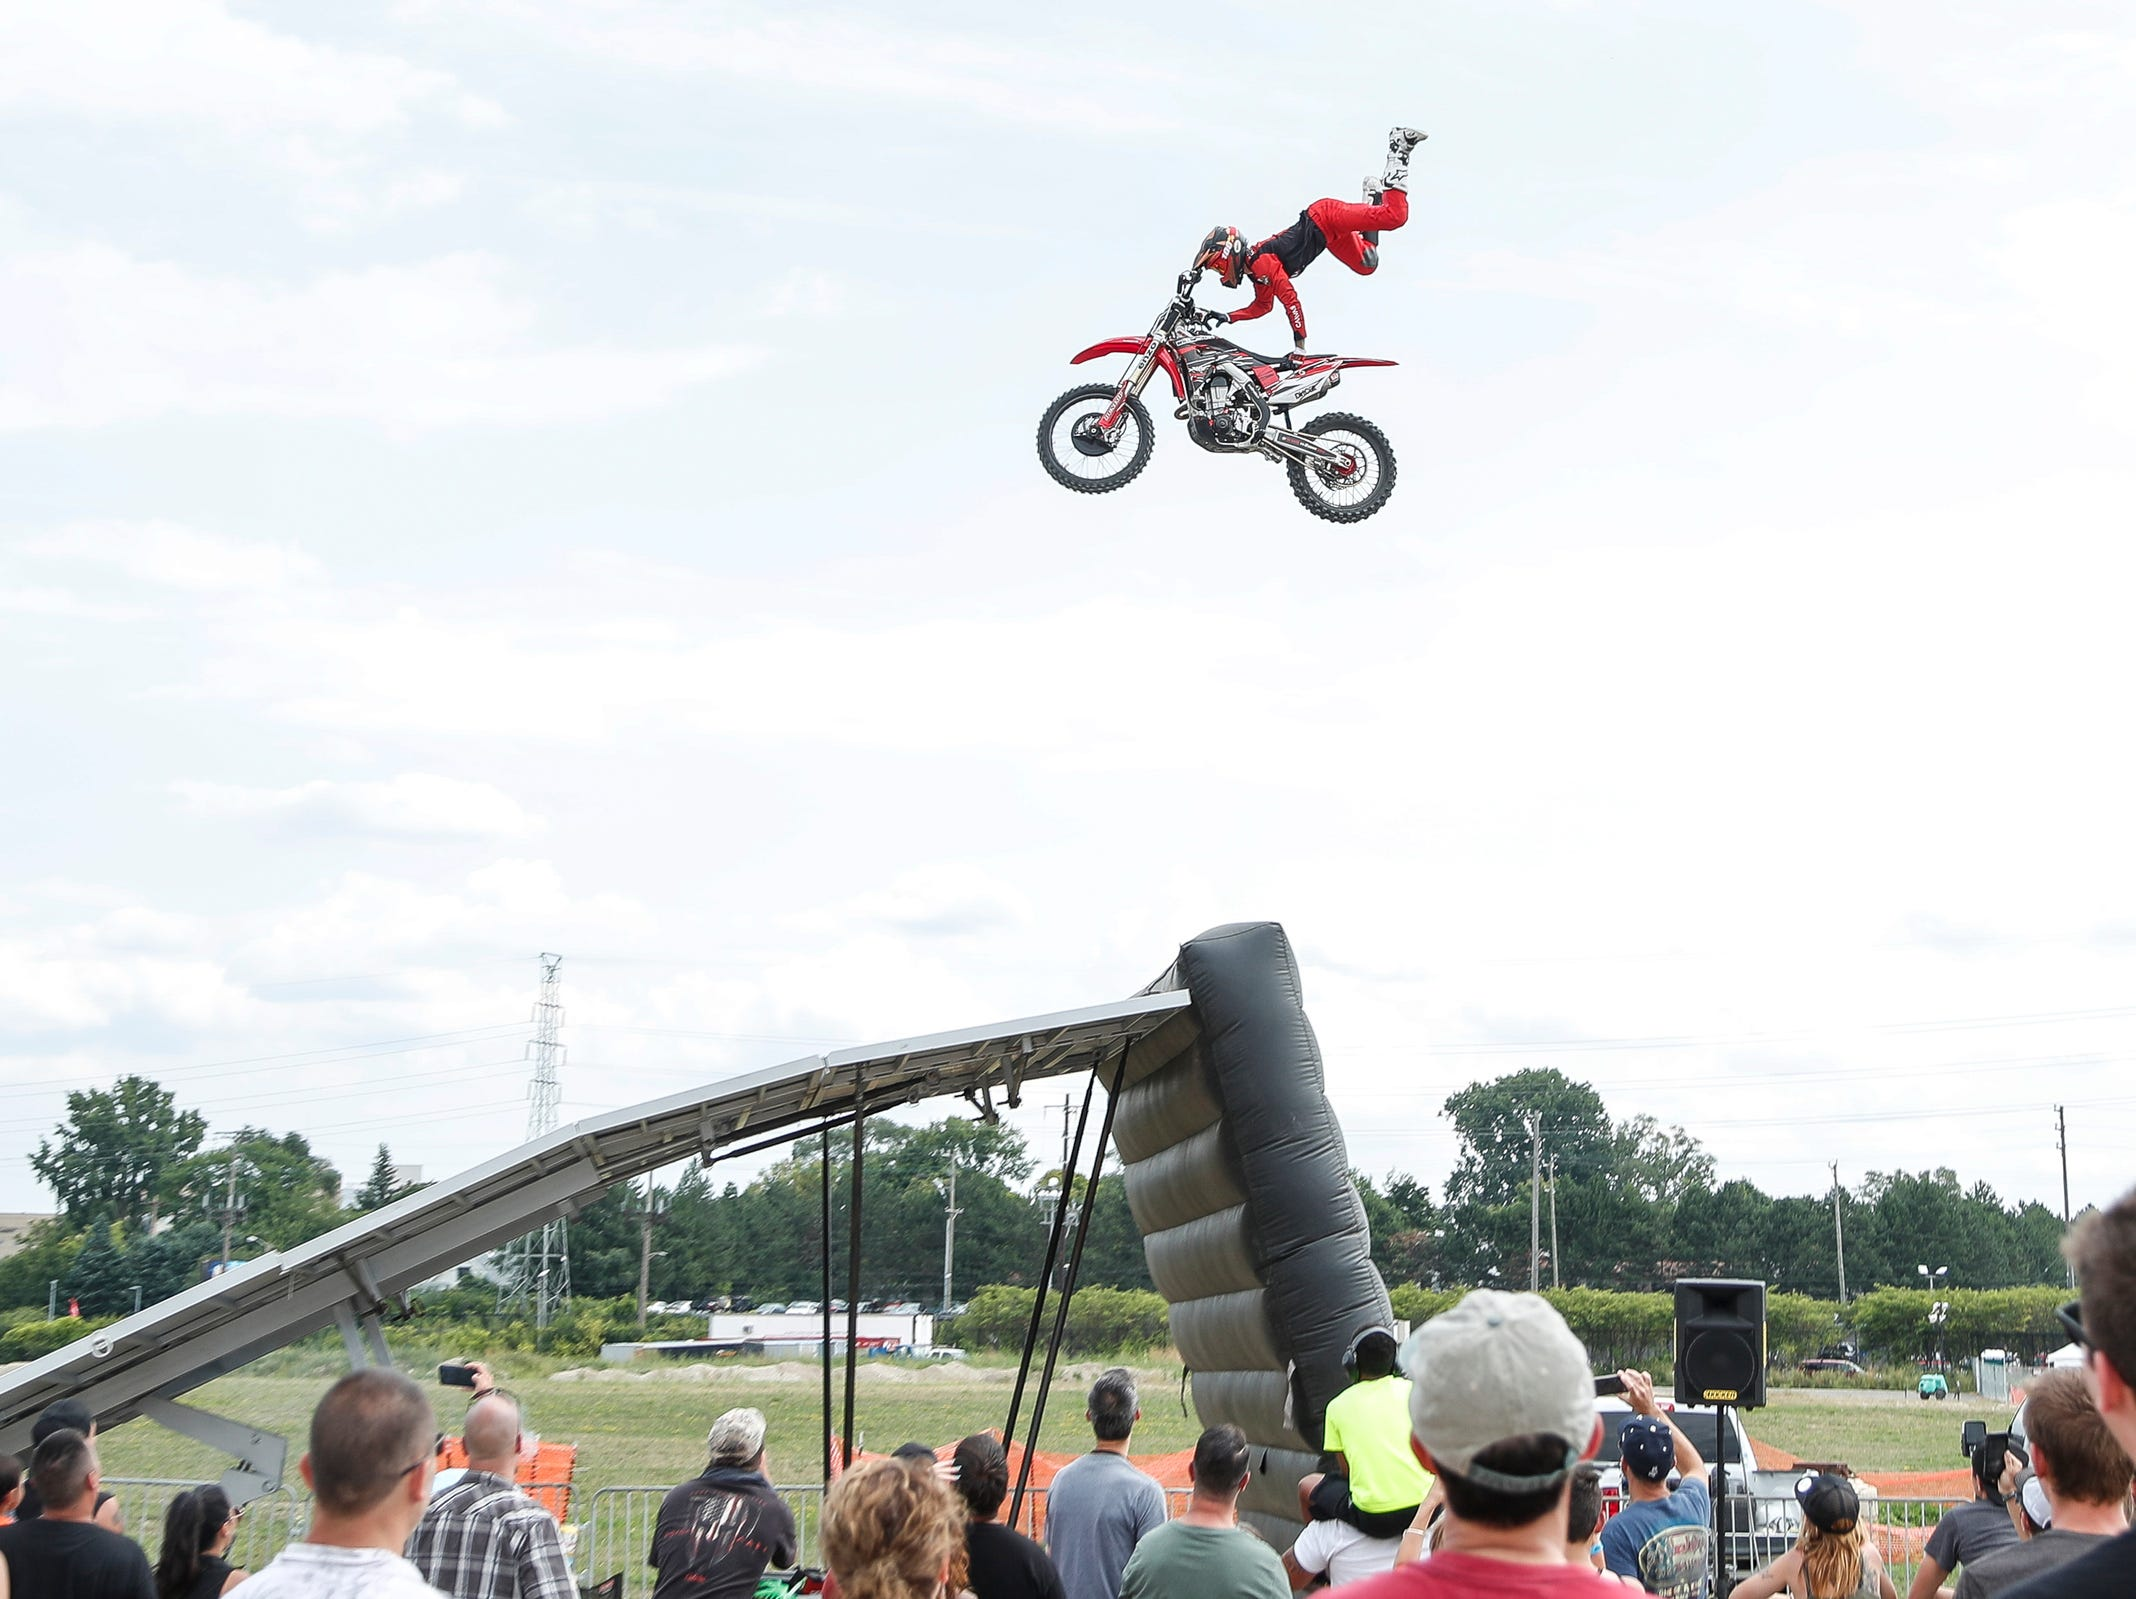 Race car fans watch a motocross exhibition during Roadkill Nights Powered by Dodge in Pontiac, Saturday, August 11, 2018.